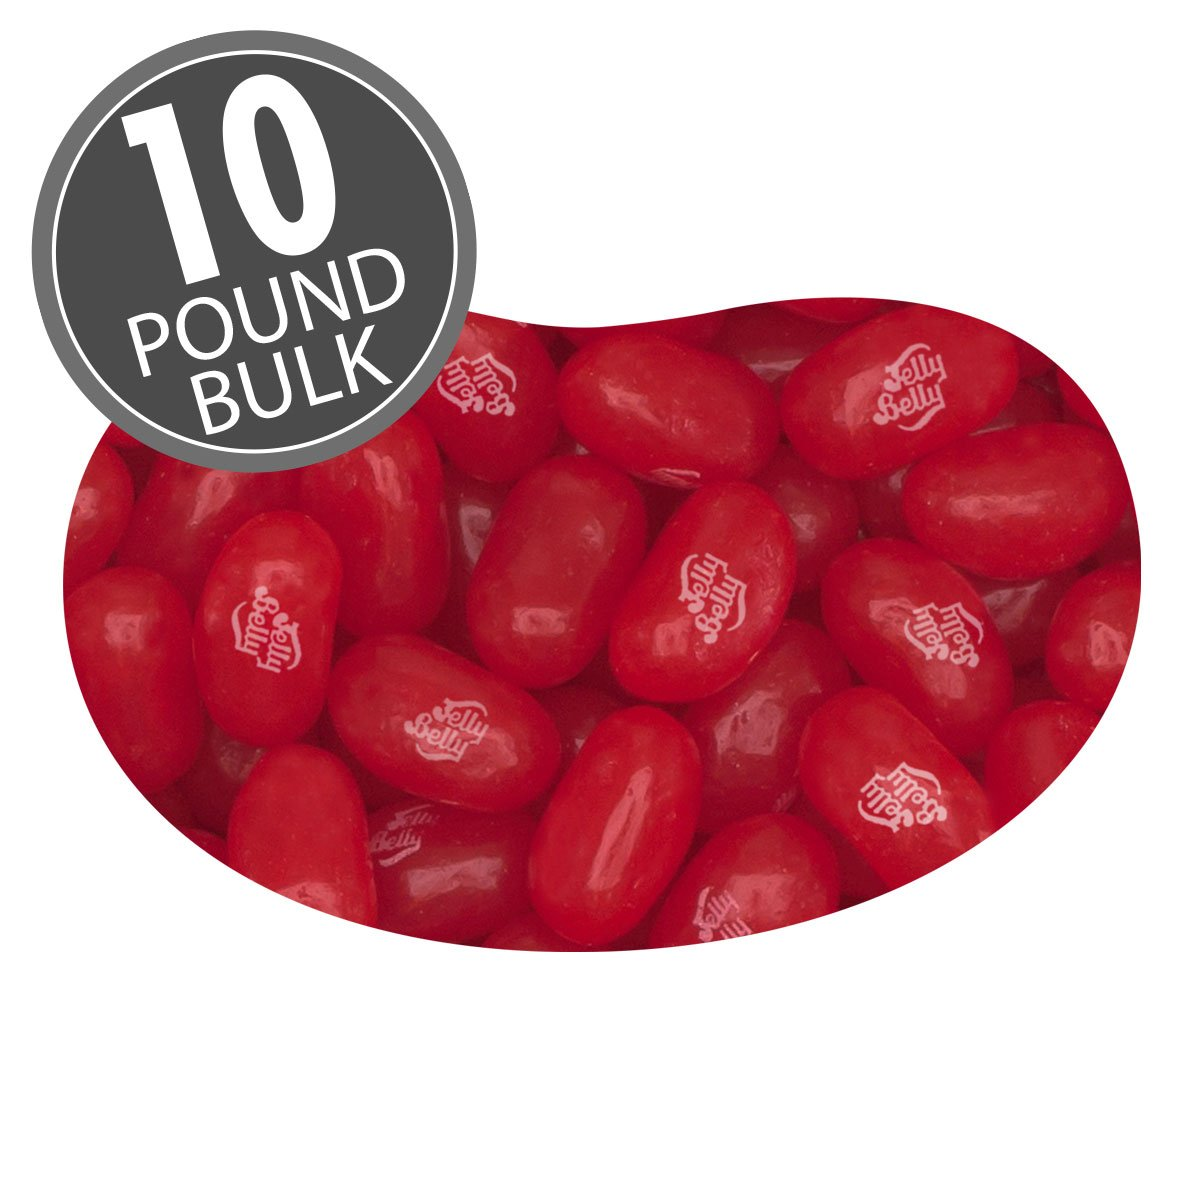 Sizzling Cinnamon Jelly Beans - 10 lbs bulk by Jelly Belly